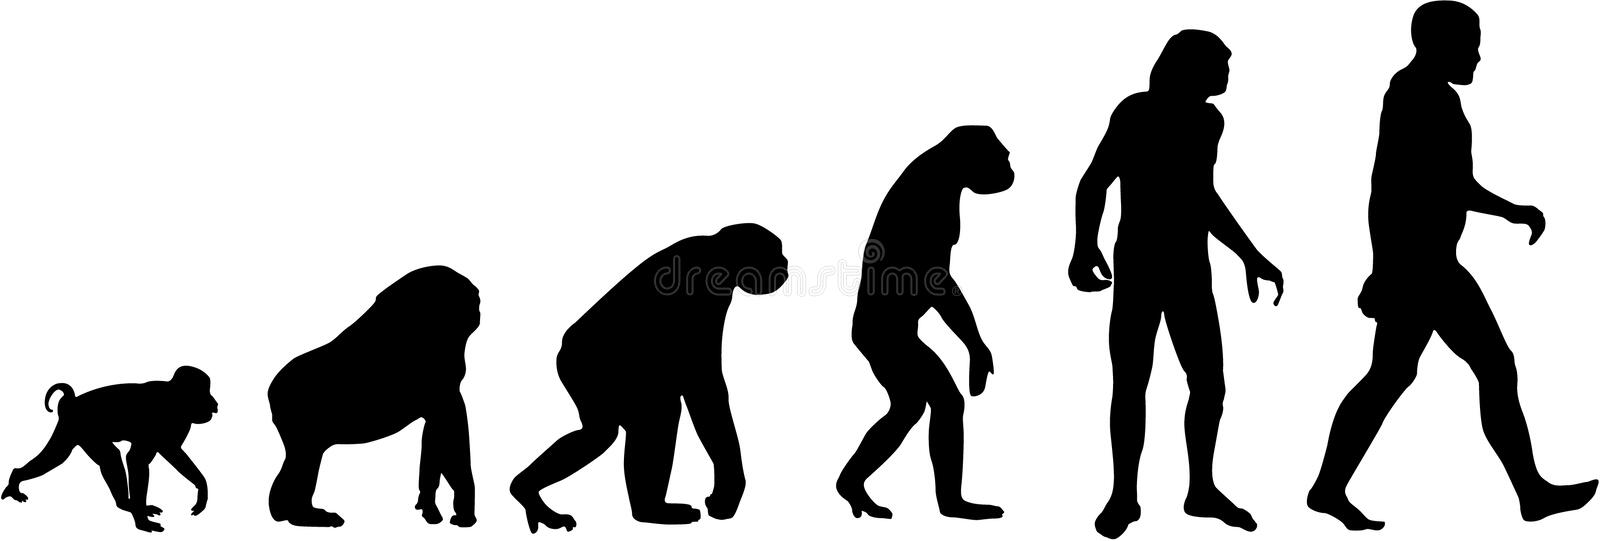 evolution vektor illustrationer